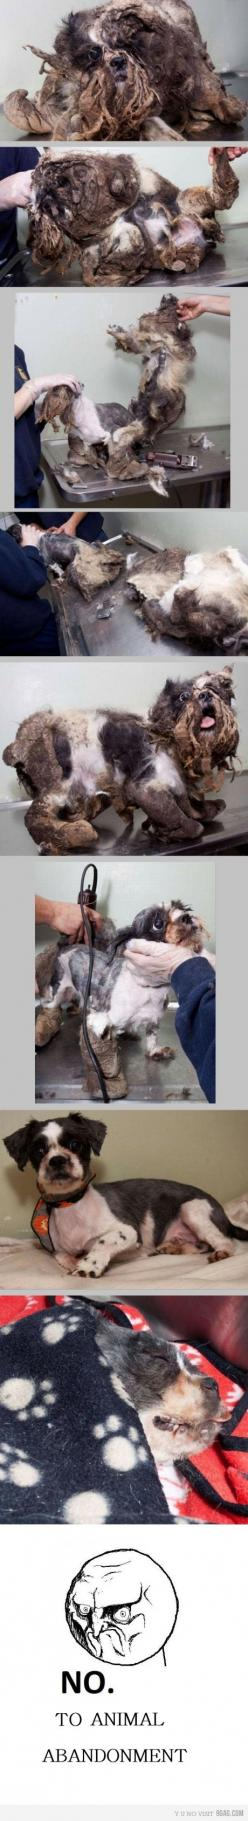 stop animal cruelty: Doggie ́S, Animal Rights, Animal Cruelty, Pet, Animal Abuse, First Haircut, Animal Abandonment, Poor Baby, So Sad